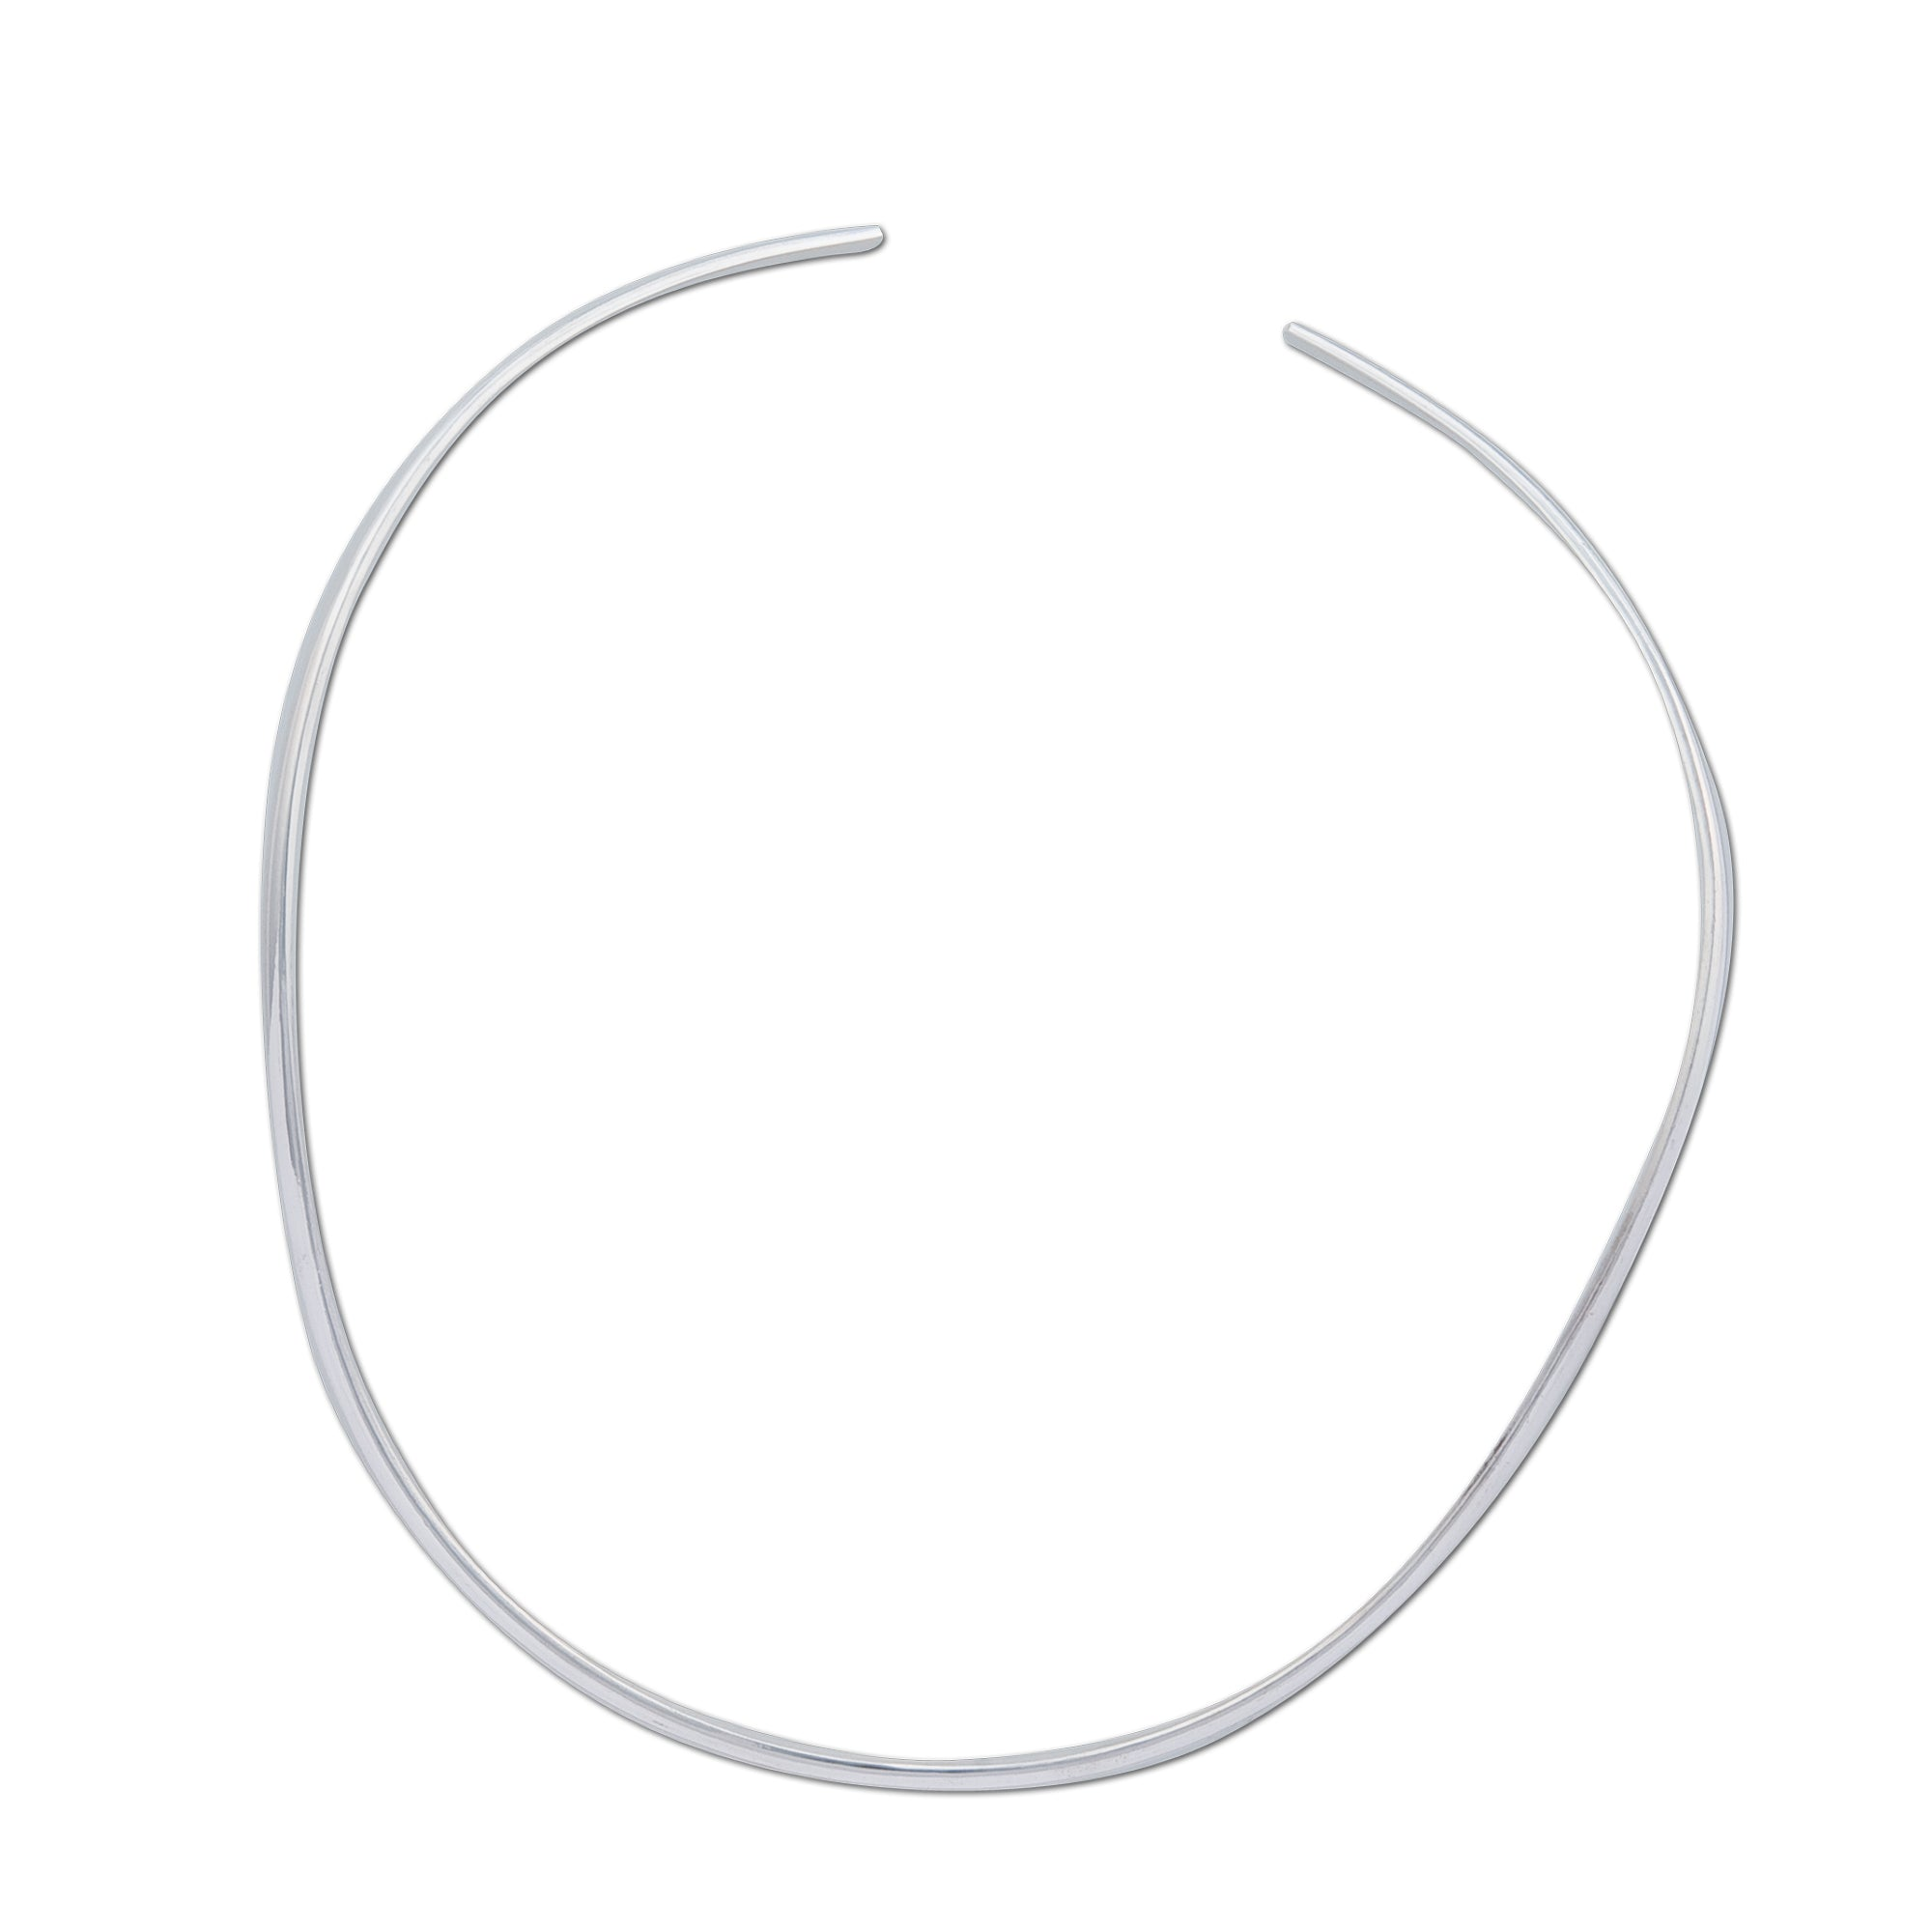 Sterling Silver Graduated Open Oval Neckwire | Charles Albert Jewelry